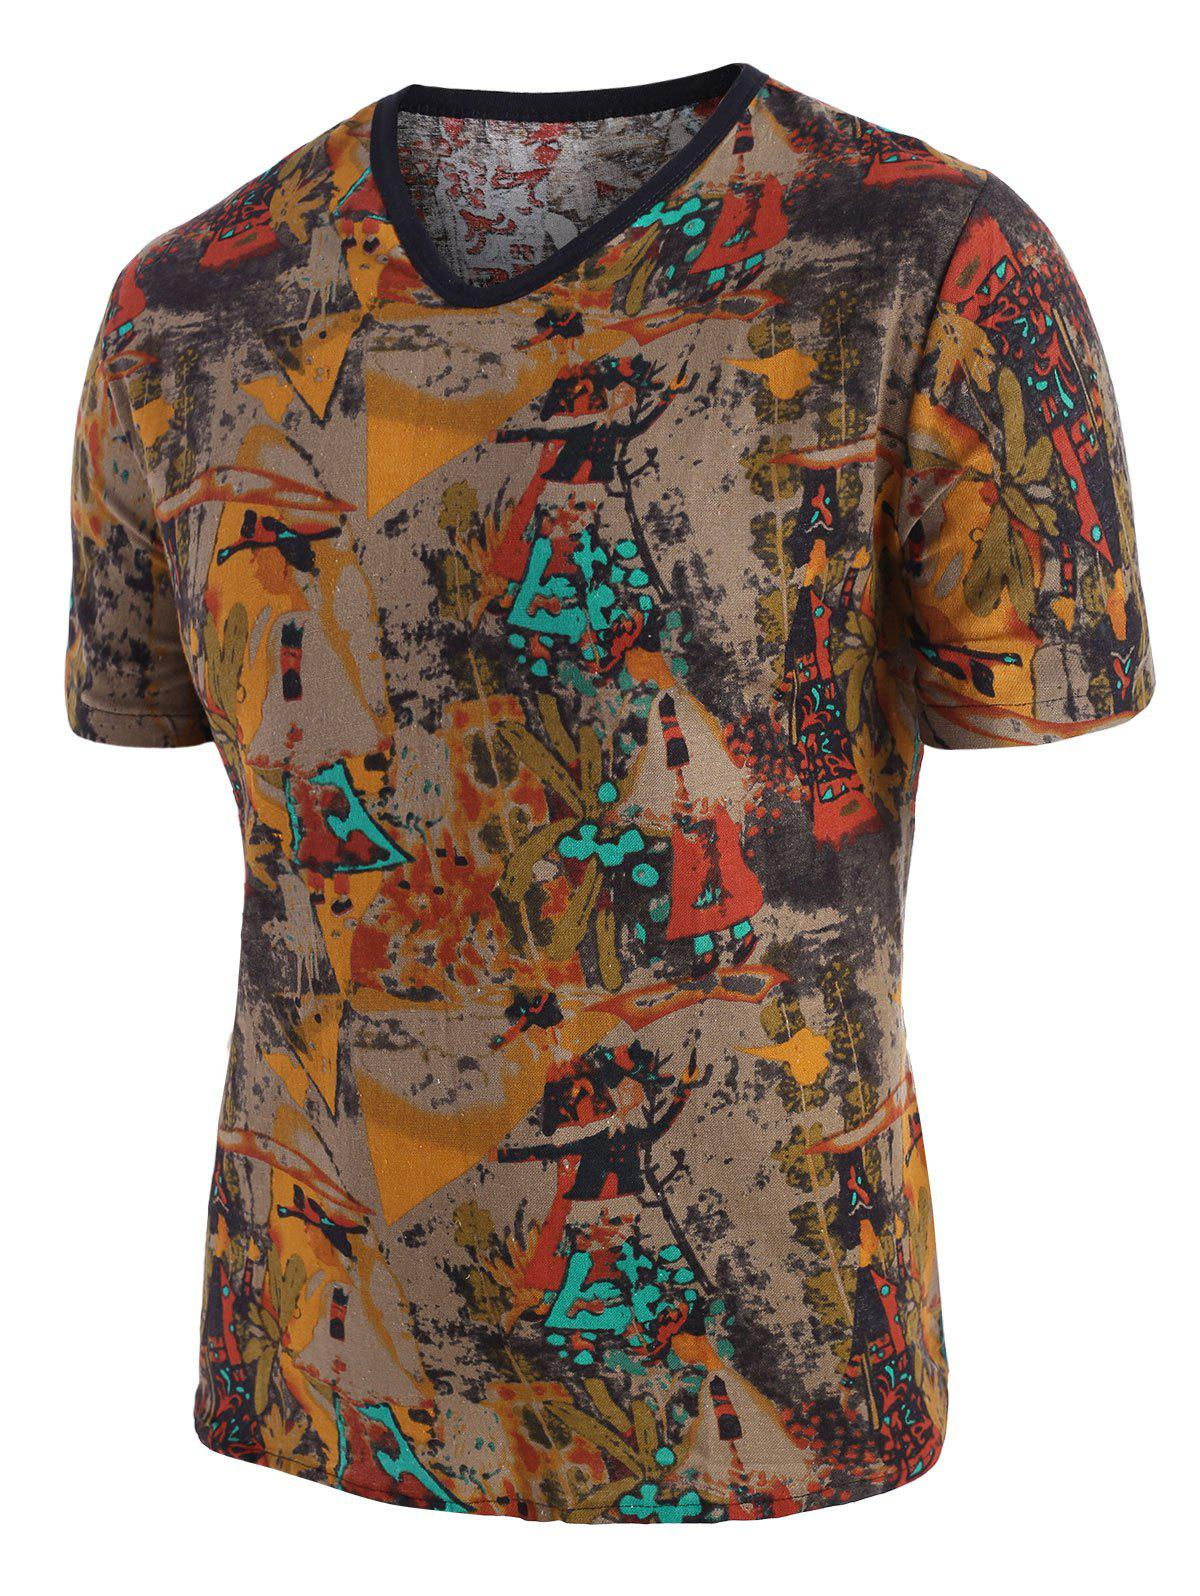 Splatter Print Ethnic Short Sleeve T Shirt - multicolor 2XL